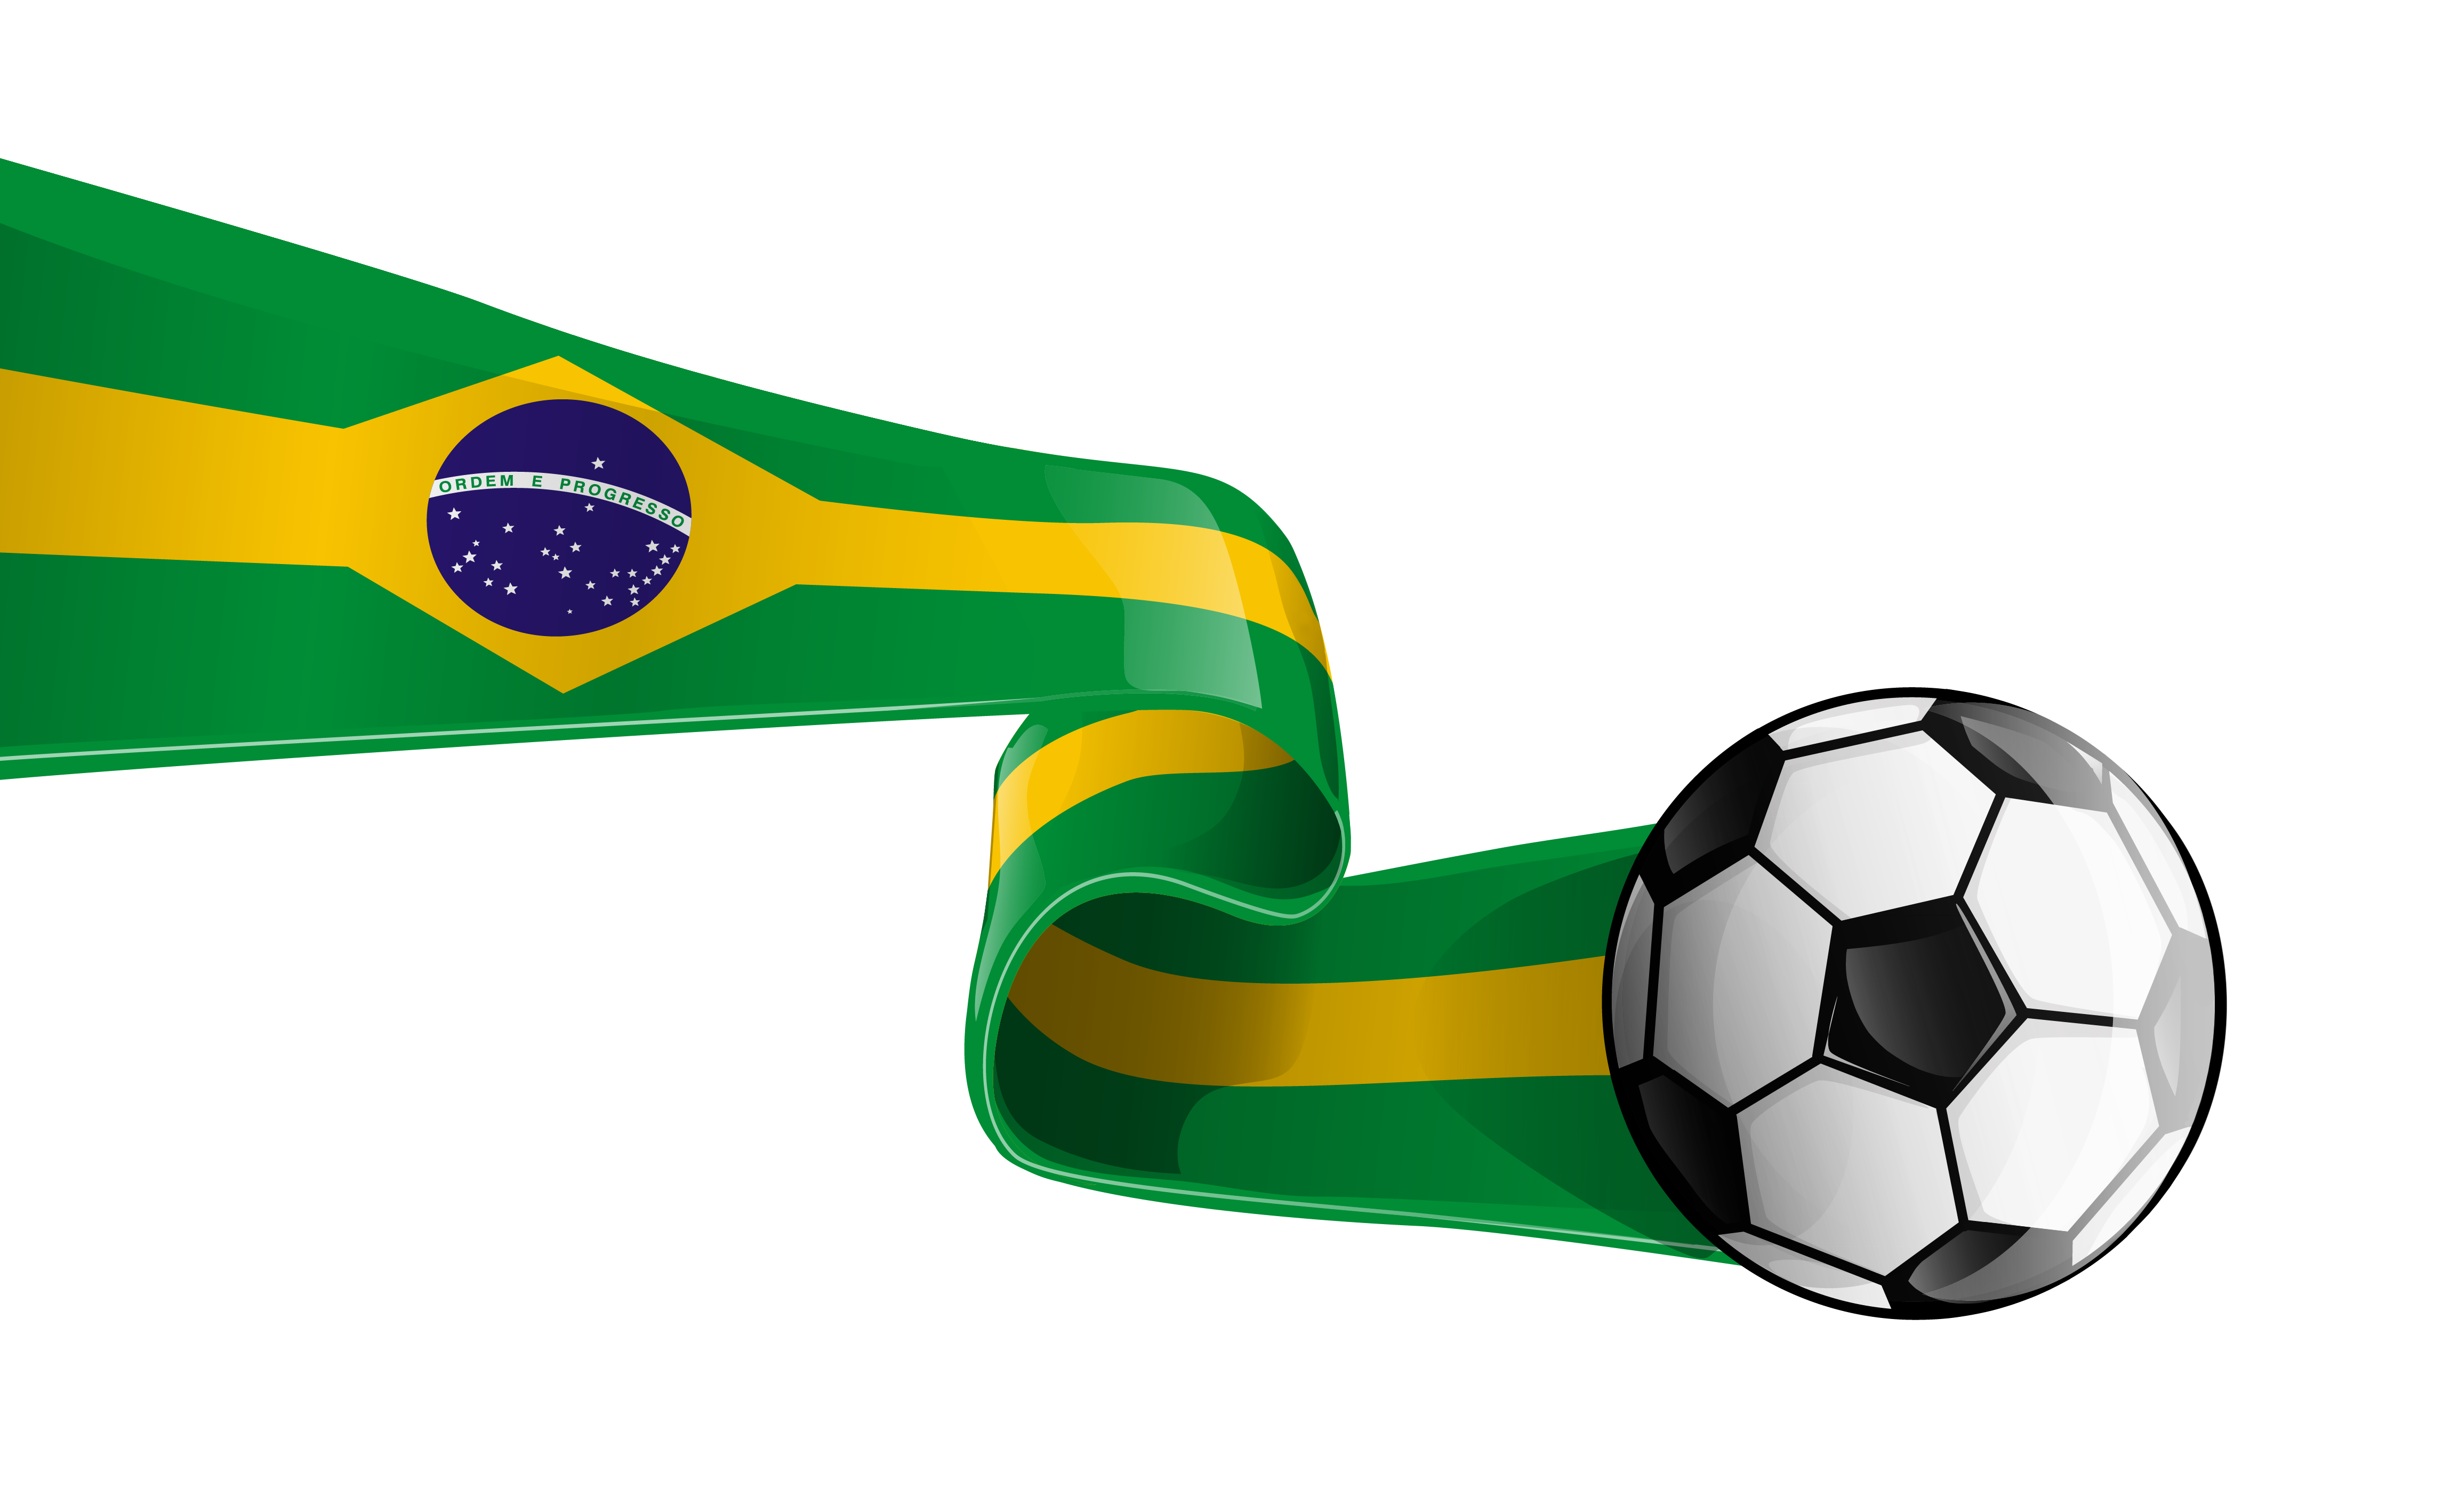 Brazil clipart #7, Download drawings